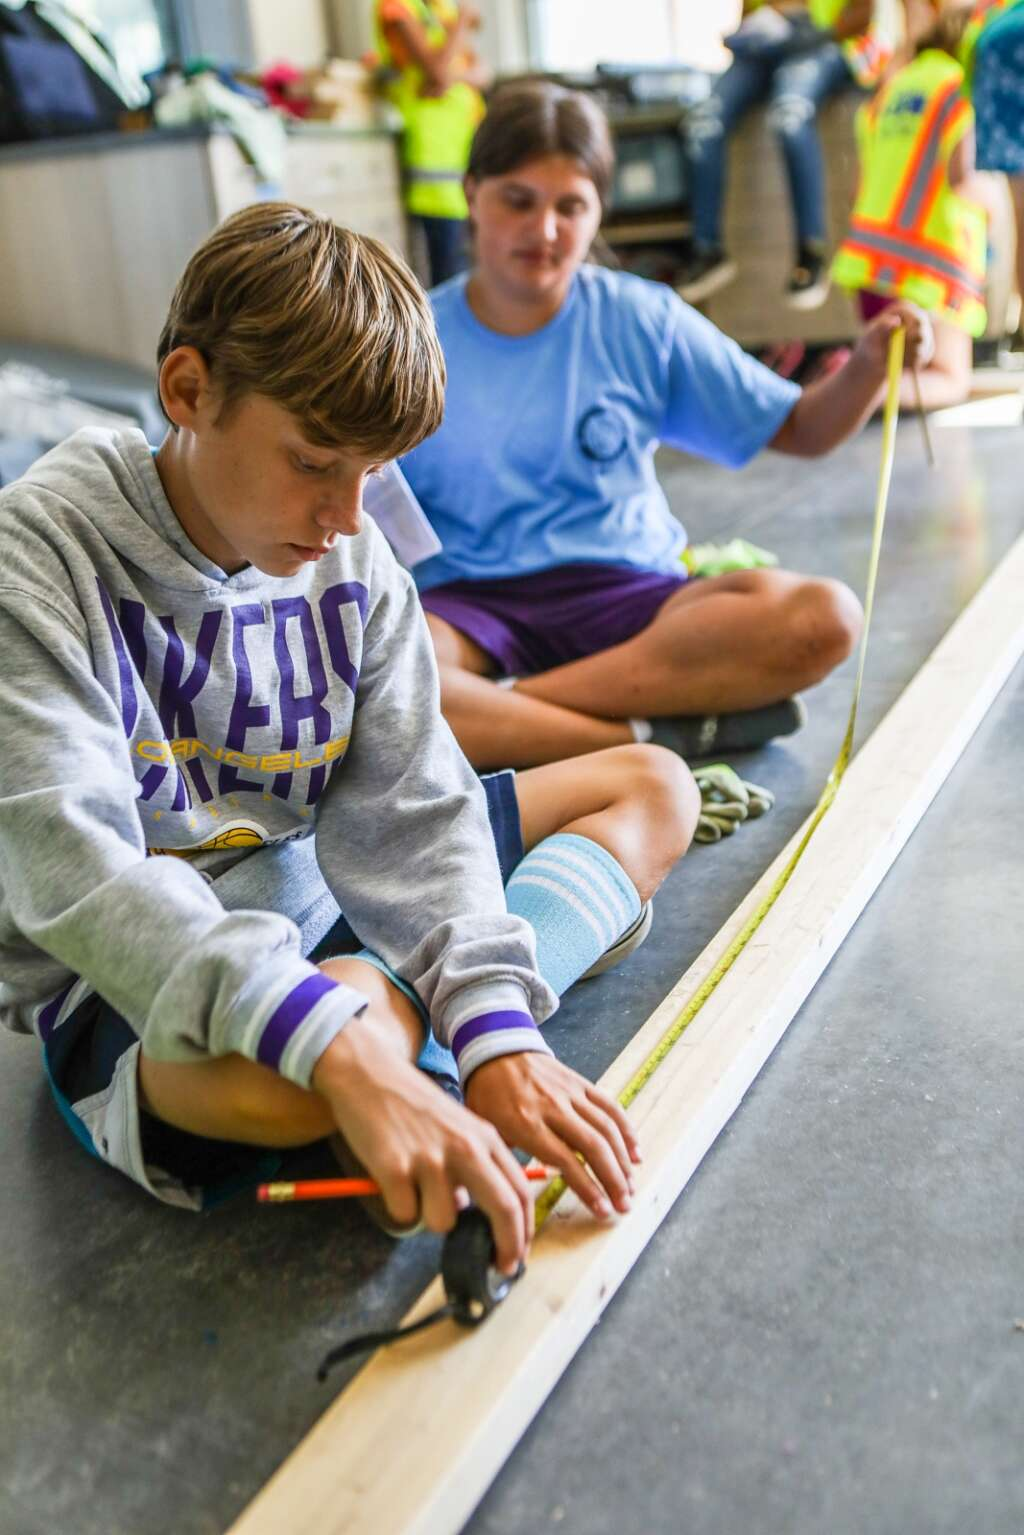 Zeppelin Corr and McKinley DeBellevue measure twice to only cut once during YouthPower365 build day Friday at Eagle Valley Elementary School in Eagle.